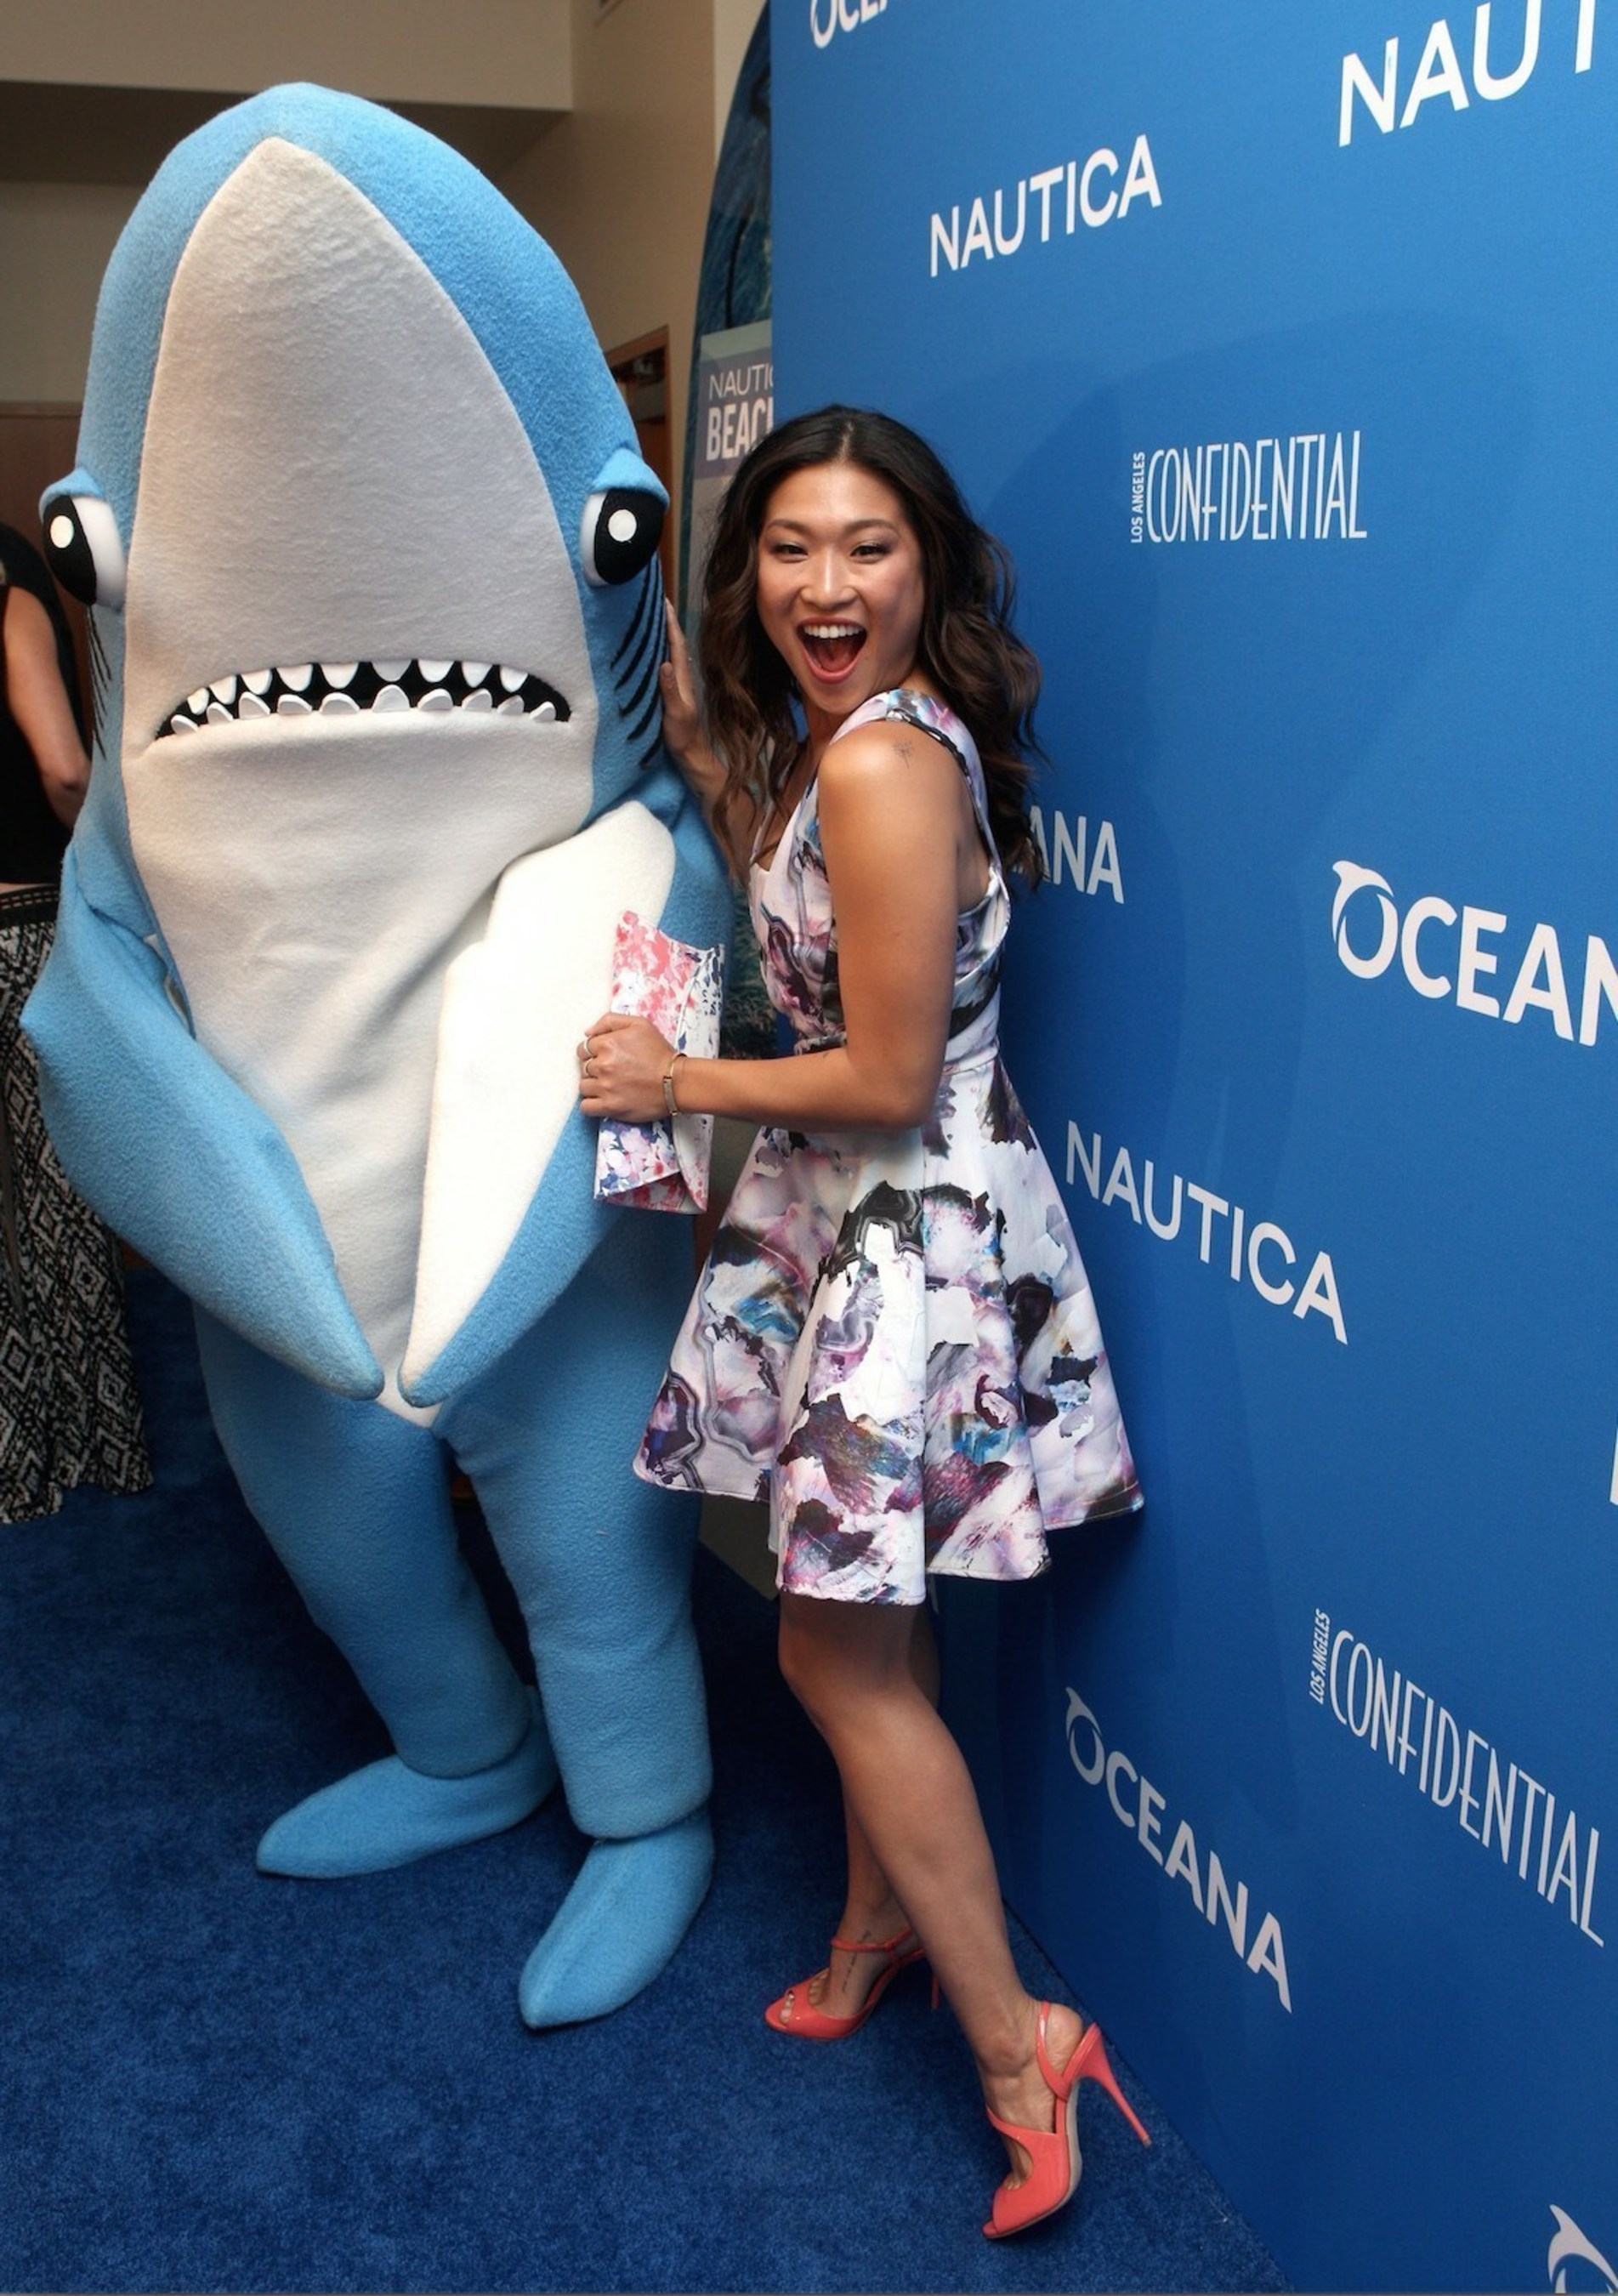 Jenna Ushkowitz and Reid Scott Celebrate the Oceans at 3rd Annual Nautica Oceana Beach House Party